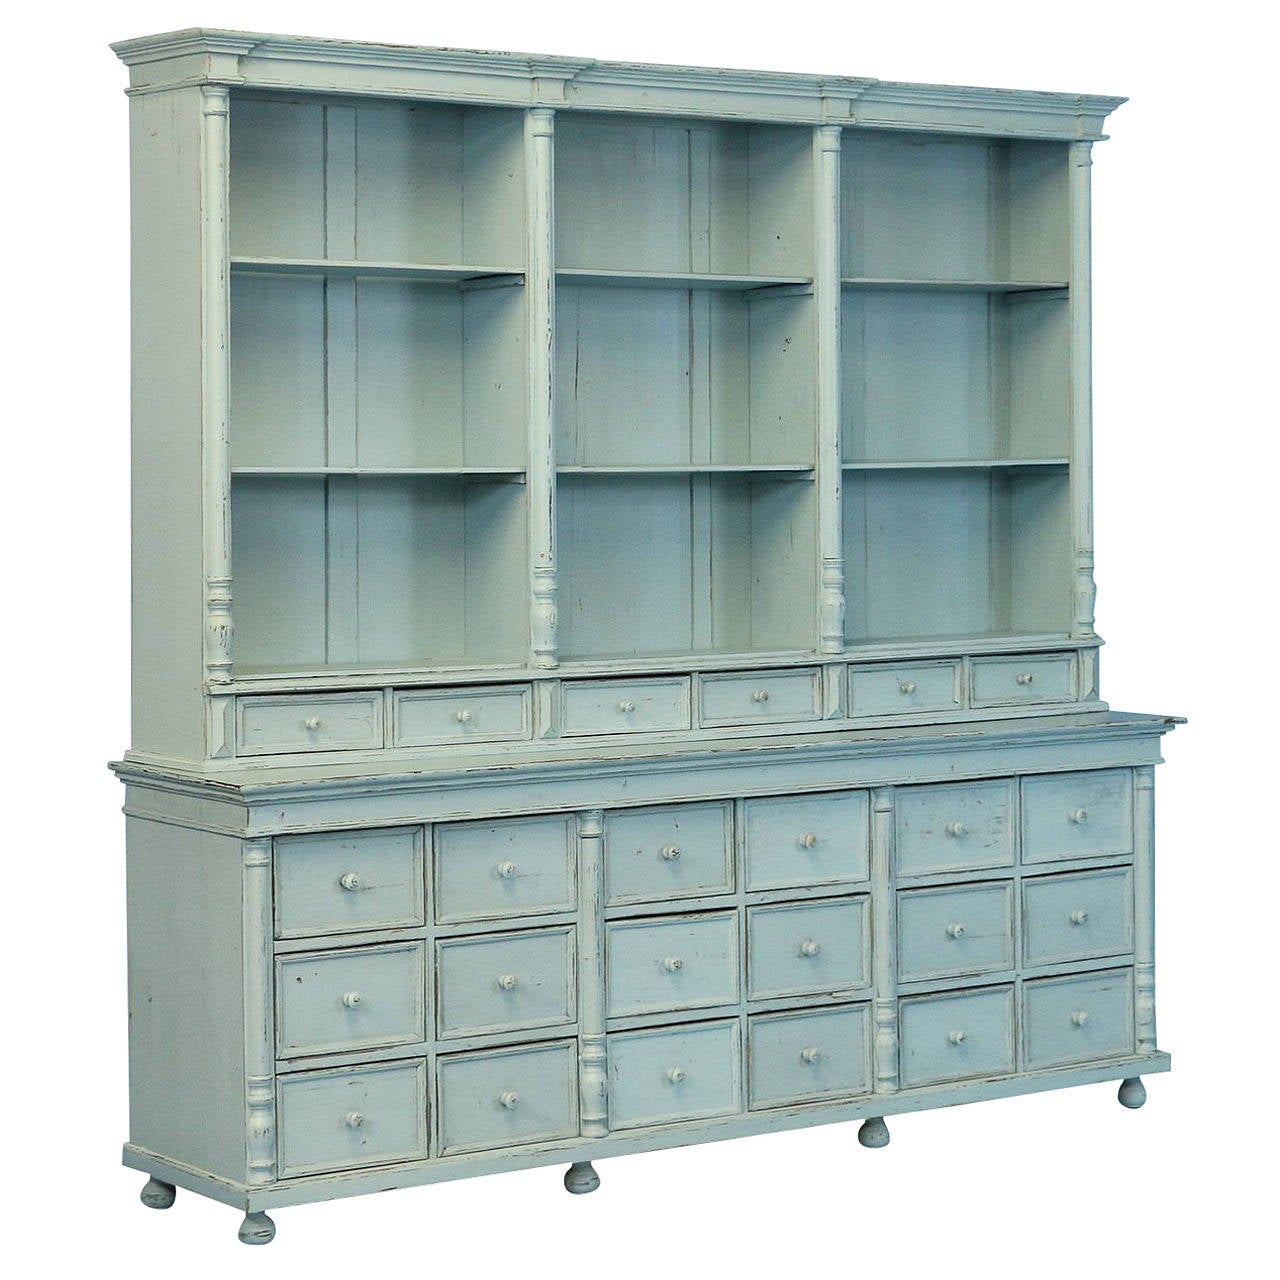 ... Blue Painted Wall Unit Cabinet Made from Reclaimed Wood 1880s Sweden